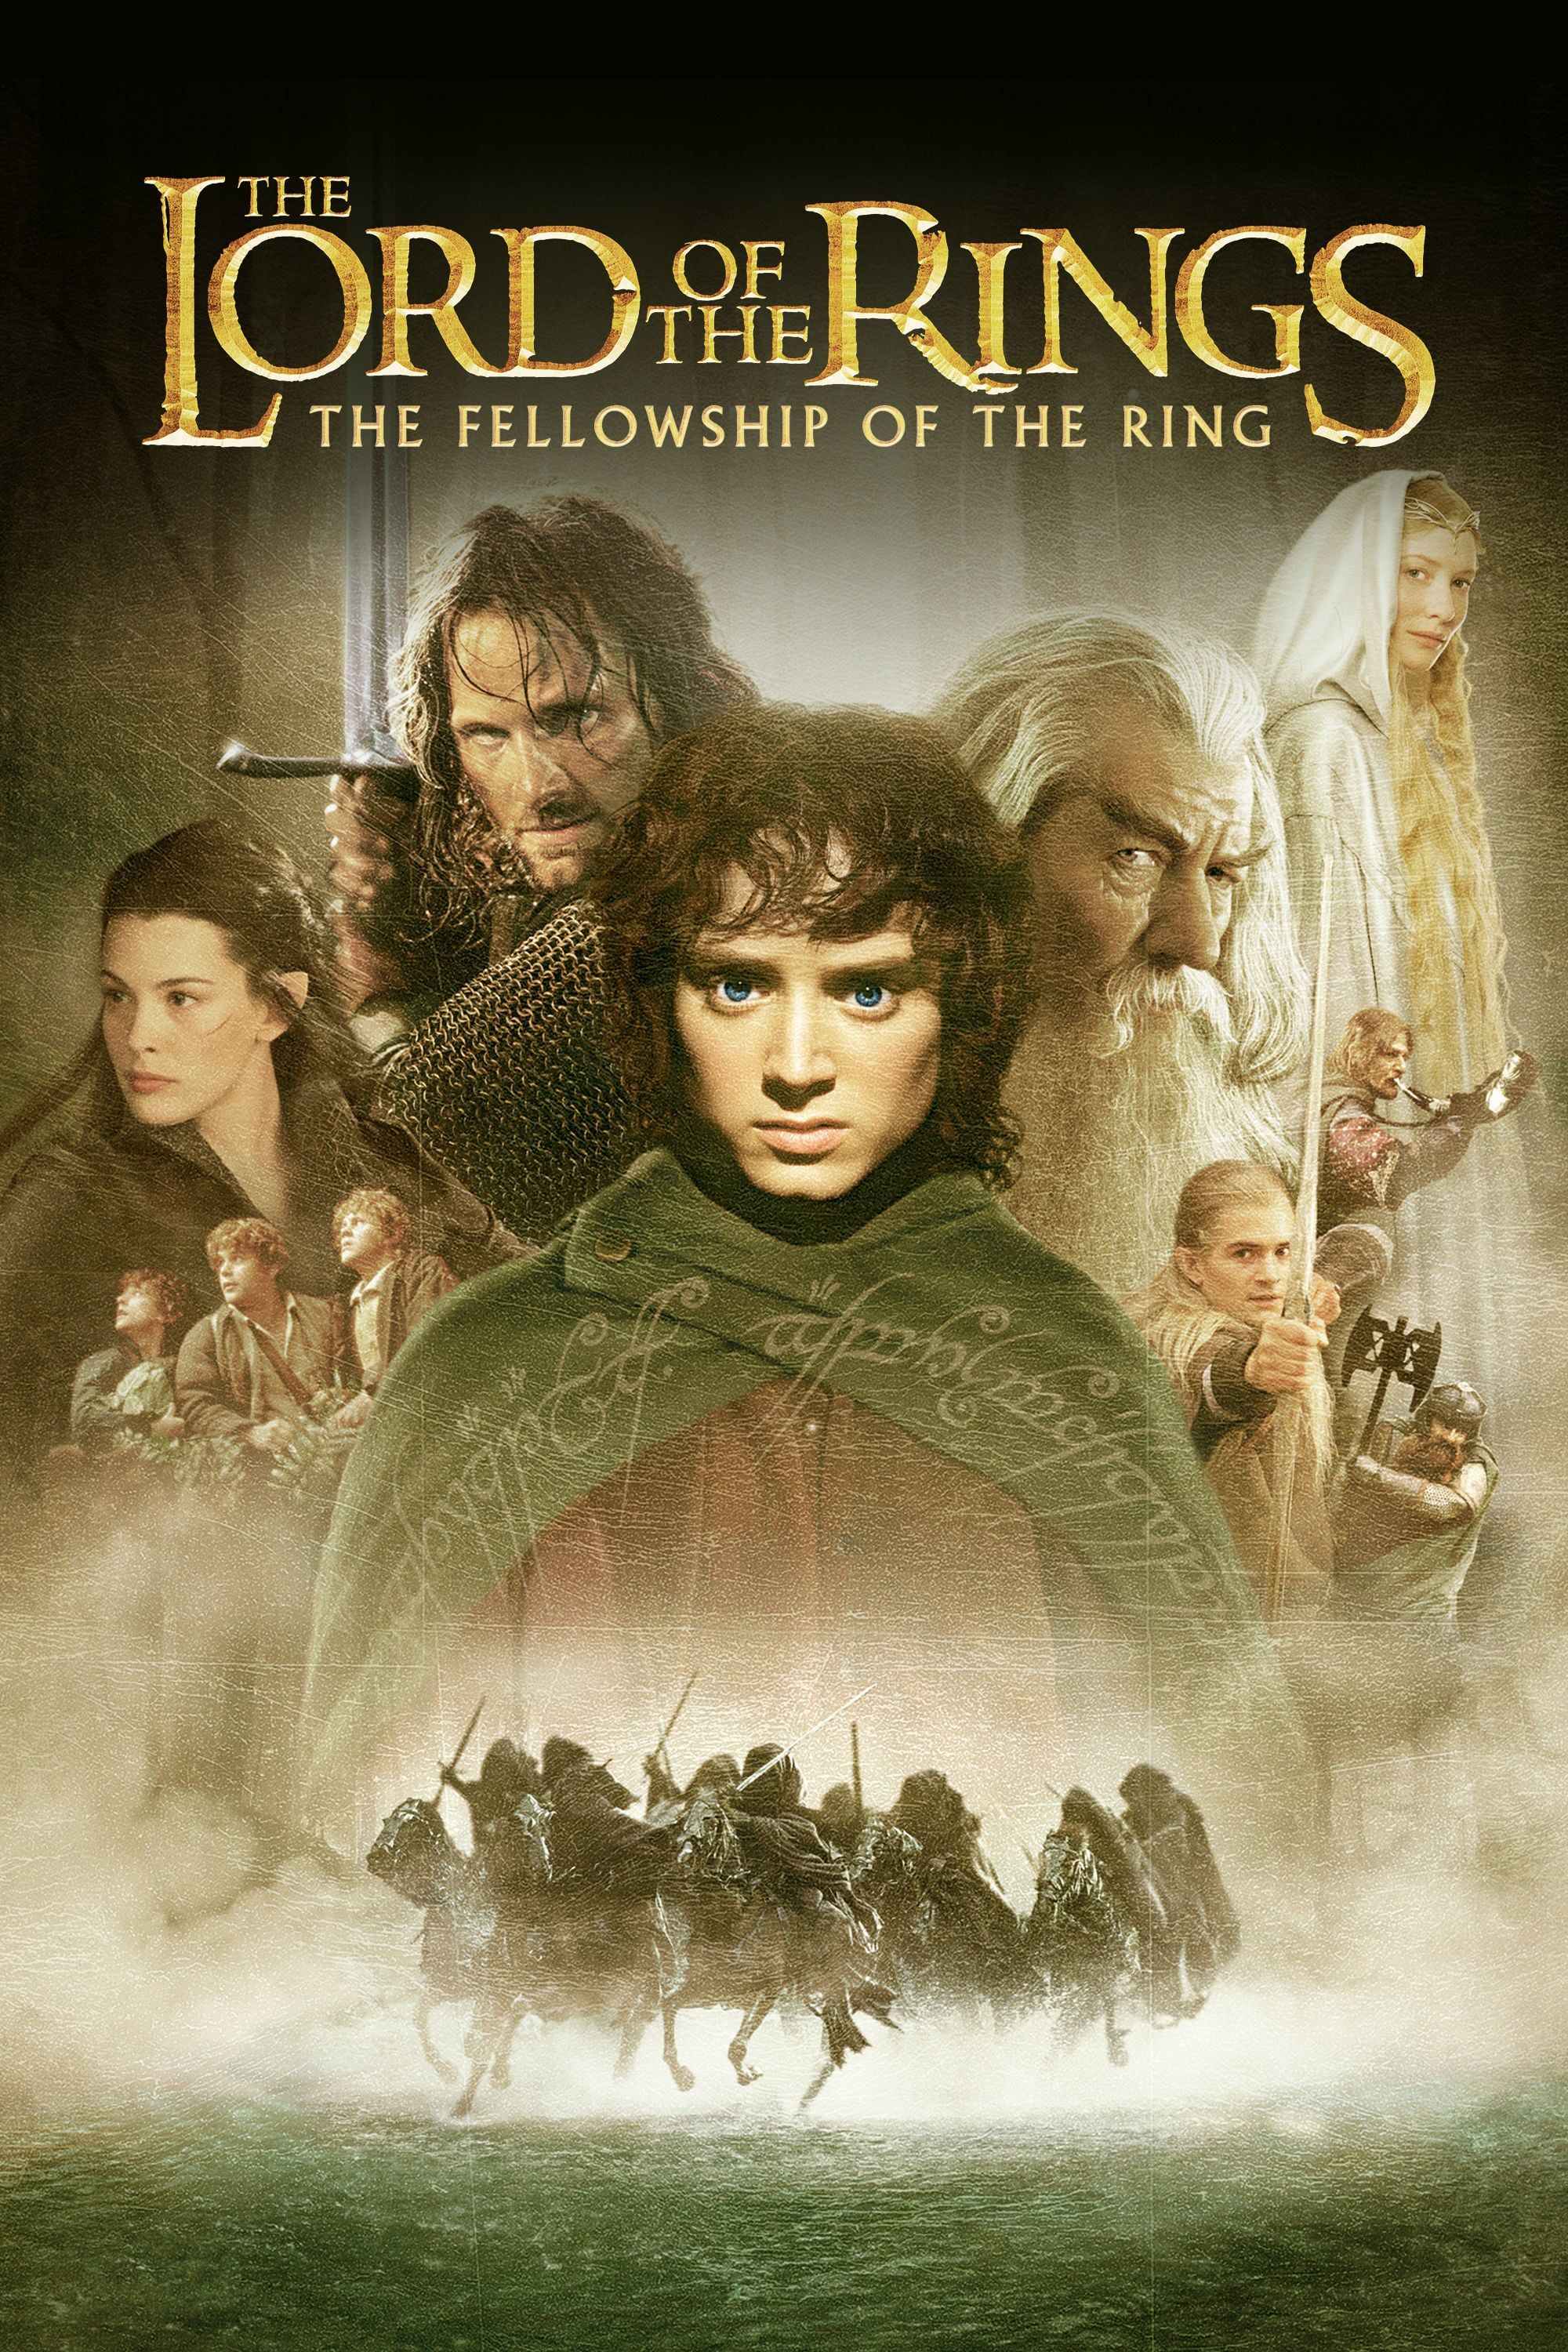 The Lord Of The Rings The Fellowship Of The Ring 2001 Full Movie Hd Quality Enjoy Full Movie Cli Seigneur Des Anneaux Film Culte Francais Films Complets